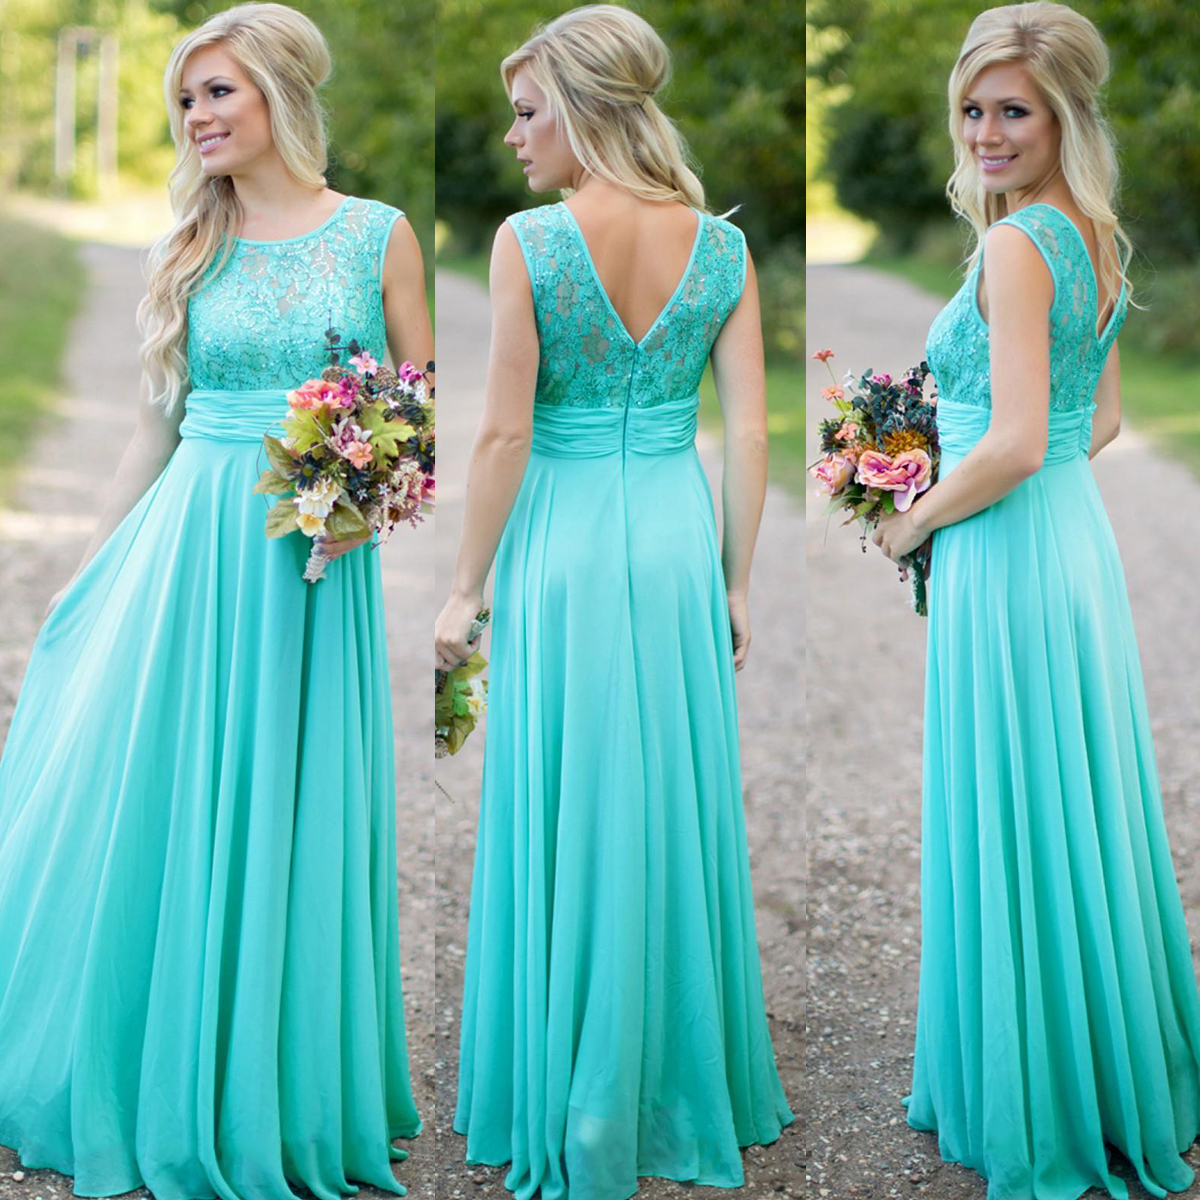 d9b31ccc07 Floral Lace Prom Dresses with V-Back, Beaded Mint Prom Dress with Soft  Pleats, Sleeveless Chiffon Floor-length Bridesmaid Dresses, #01012813